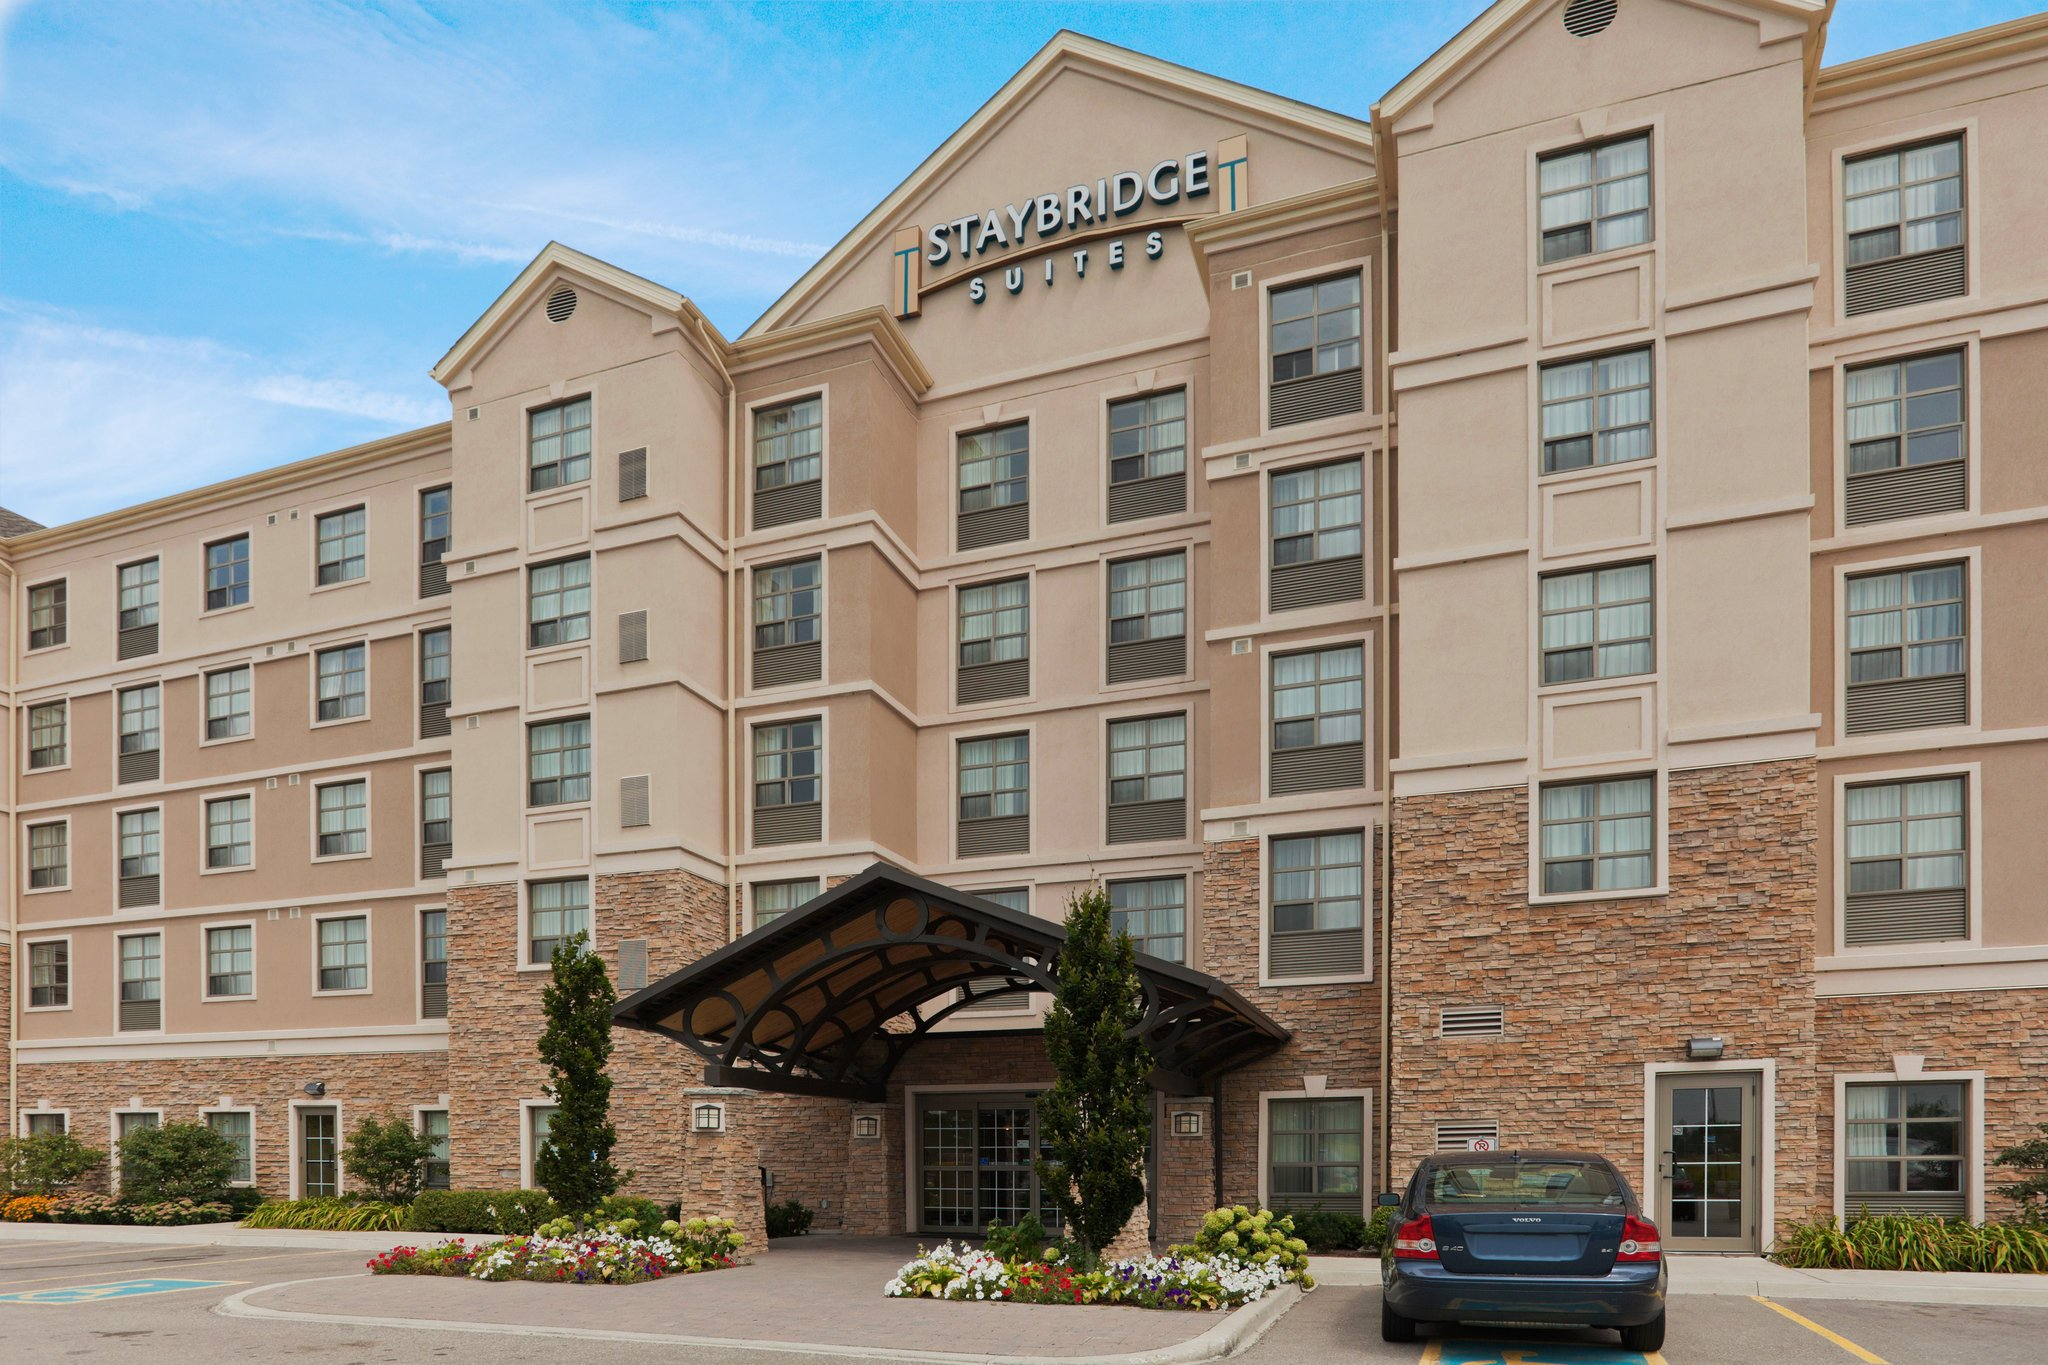 Staybridge Suites Guelph